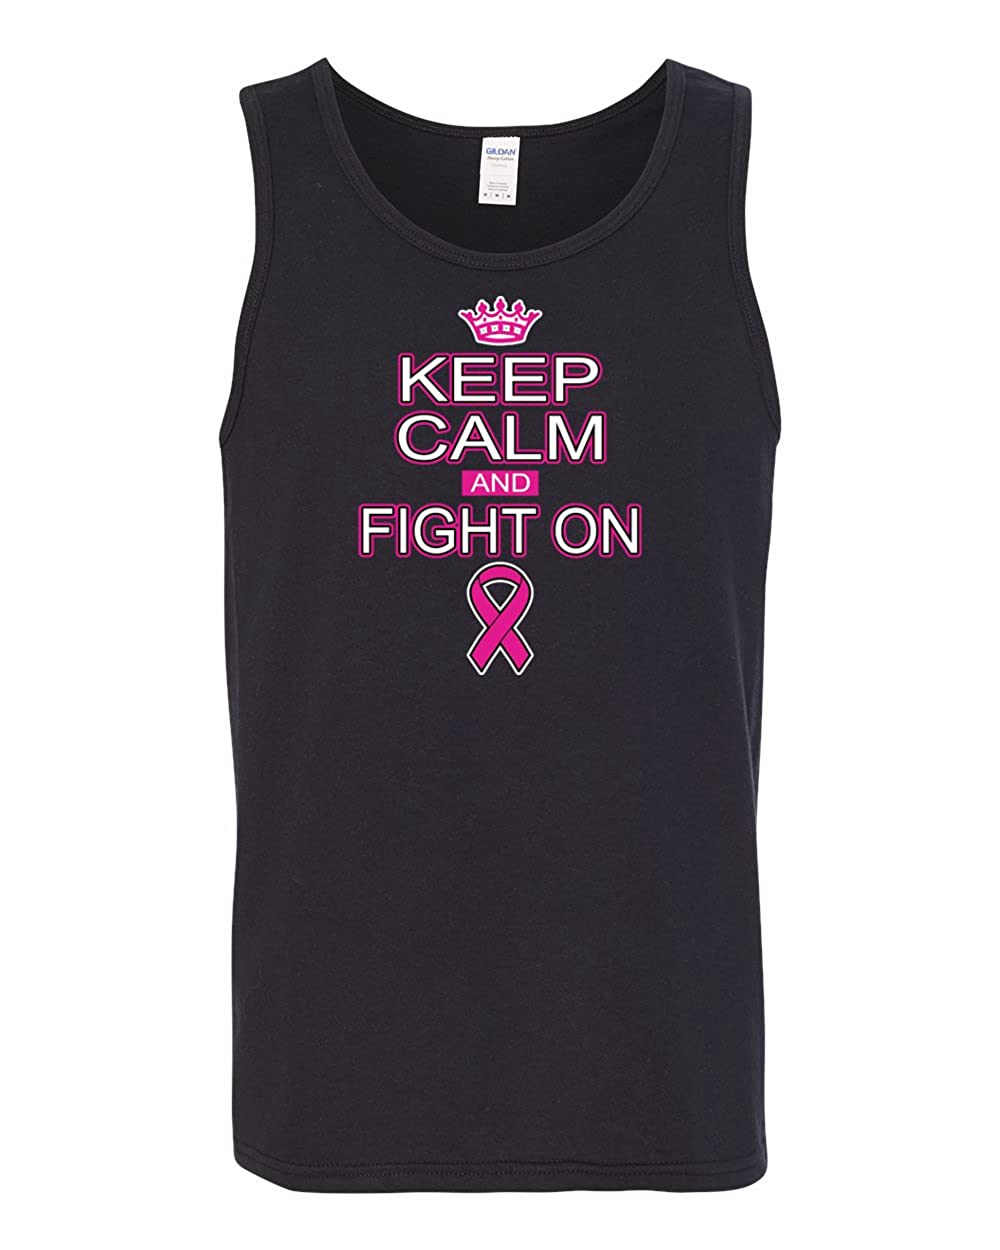 Keep Calm and Fight On Mens Breast Cancer Awareness Fashion Graphic Tank Top